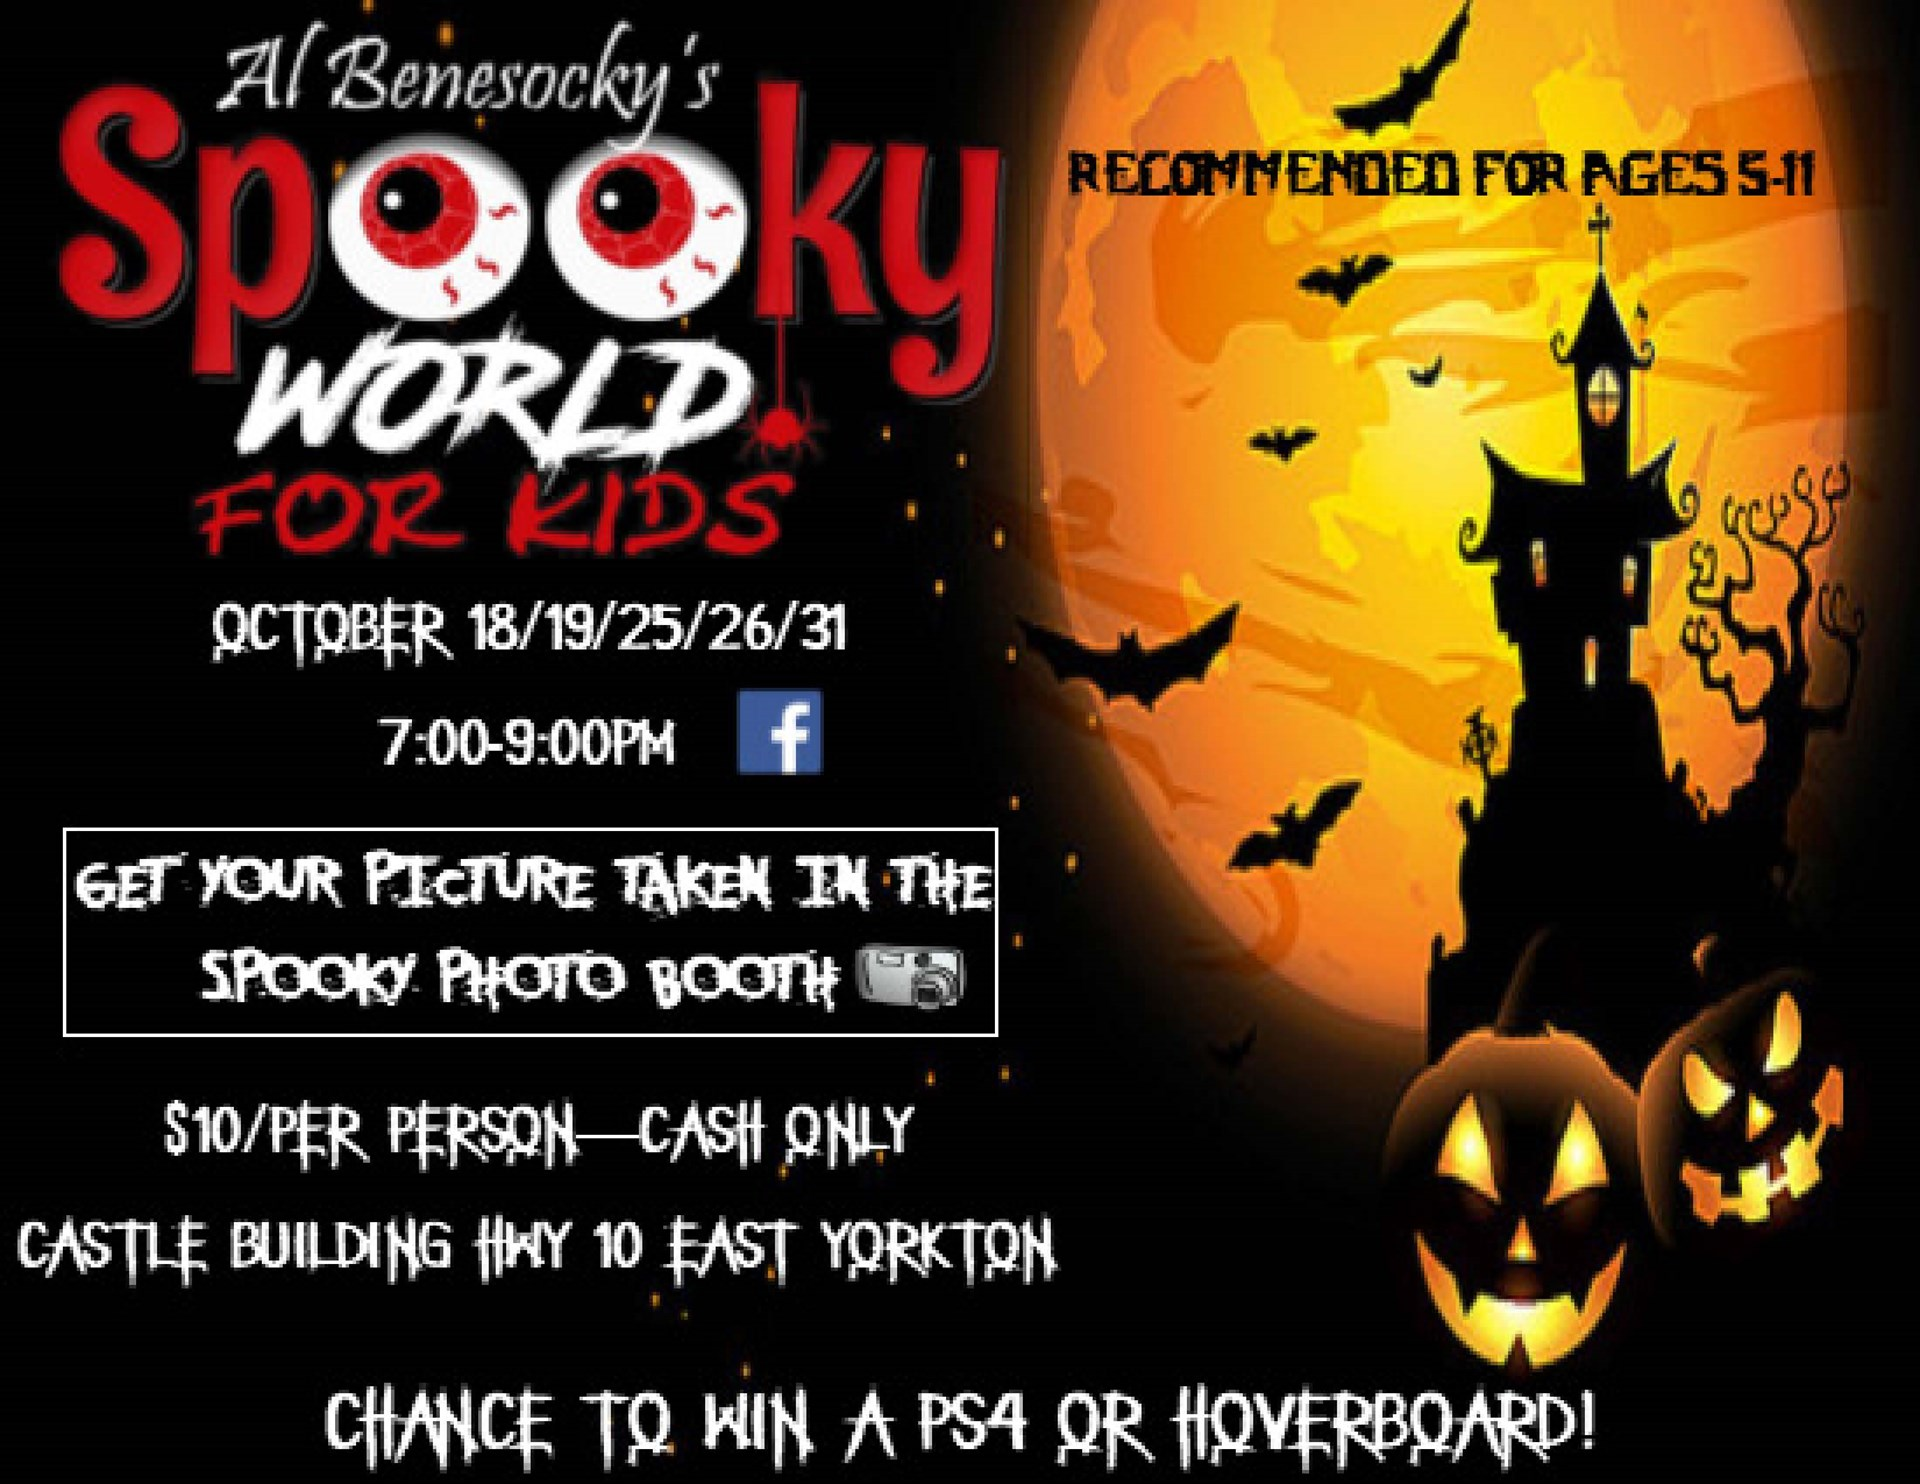 Spooky World For Kids October 18, 19, 25, 26 & 31 from 7 - 9 pm